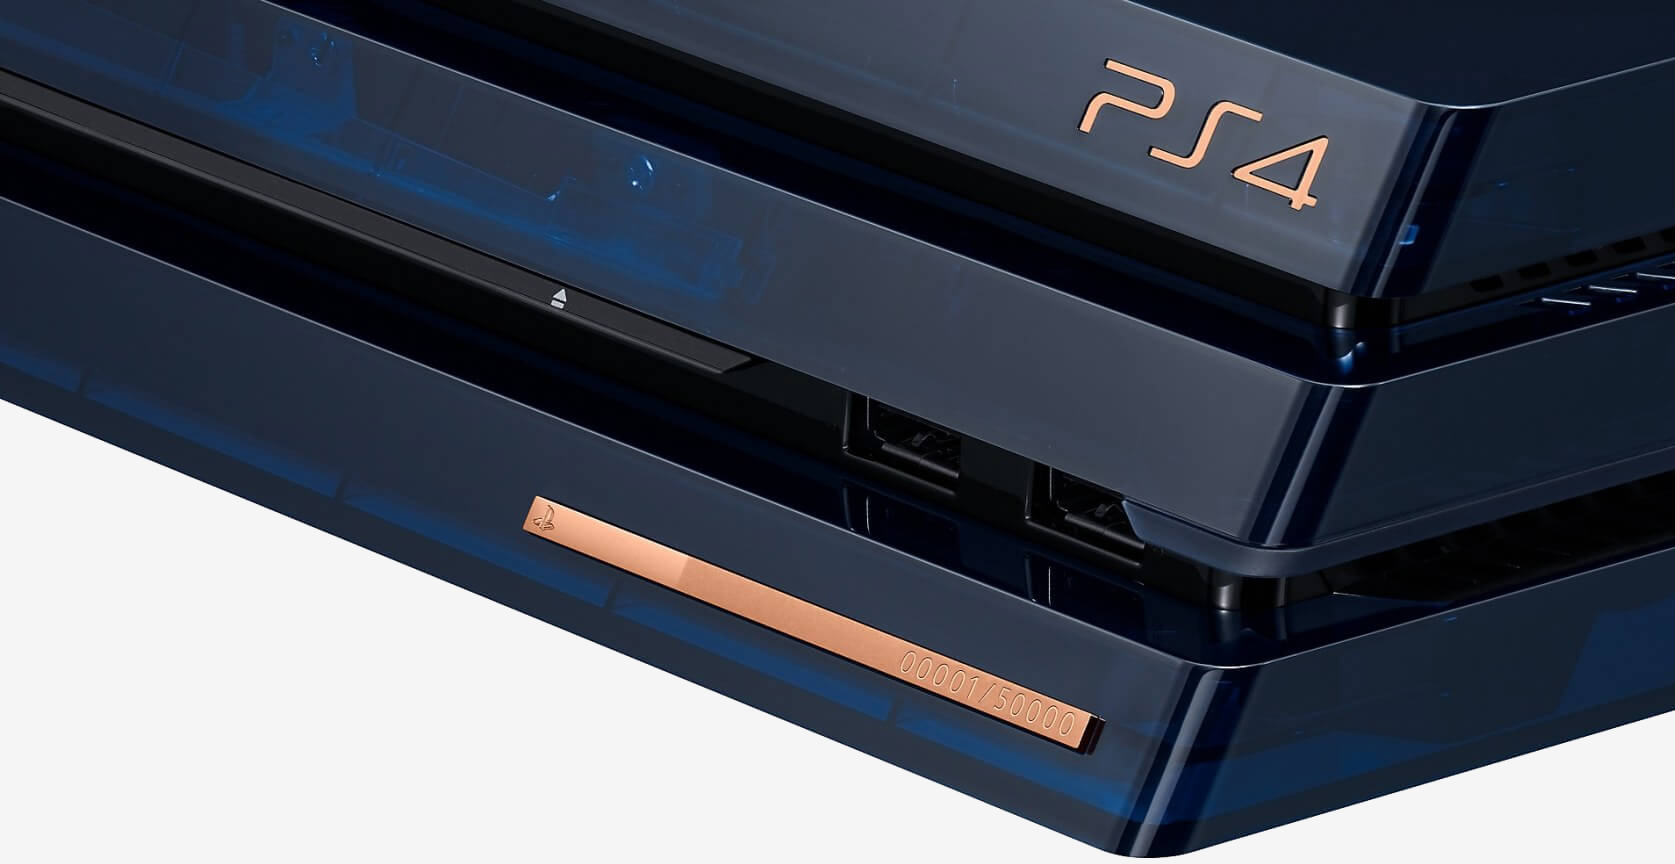 Sony Celebrates Sale of 86 Million PS4 Units as System Turns Five